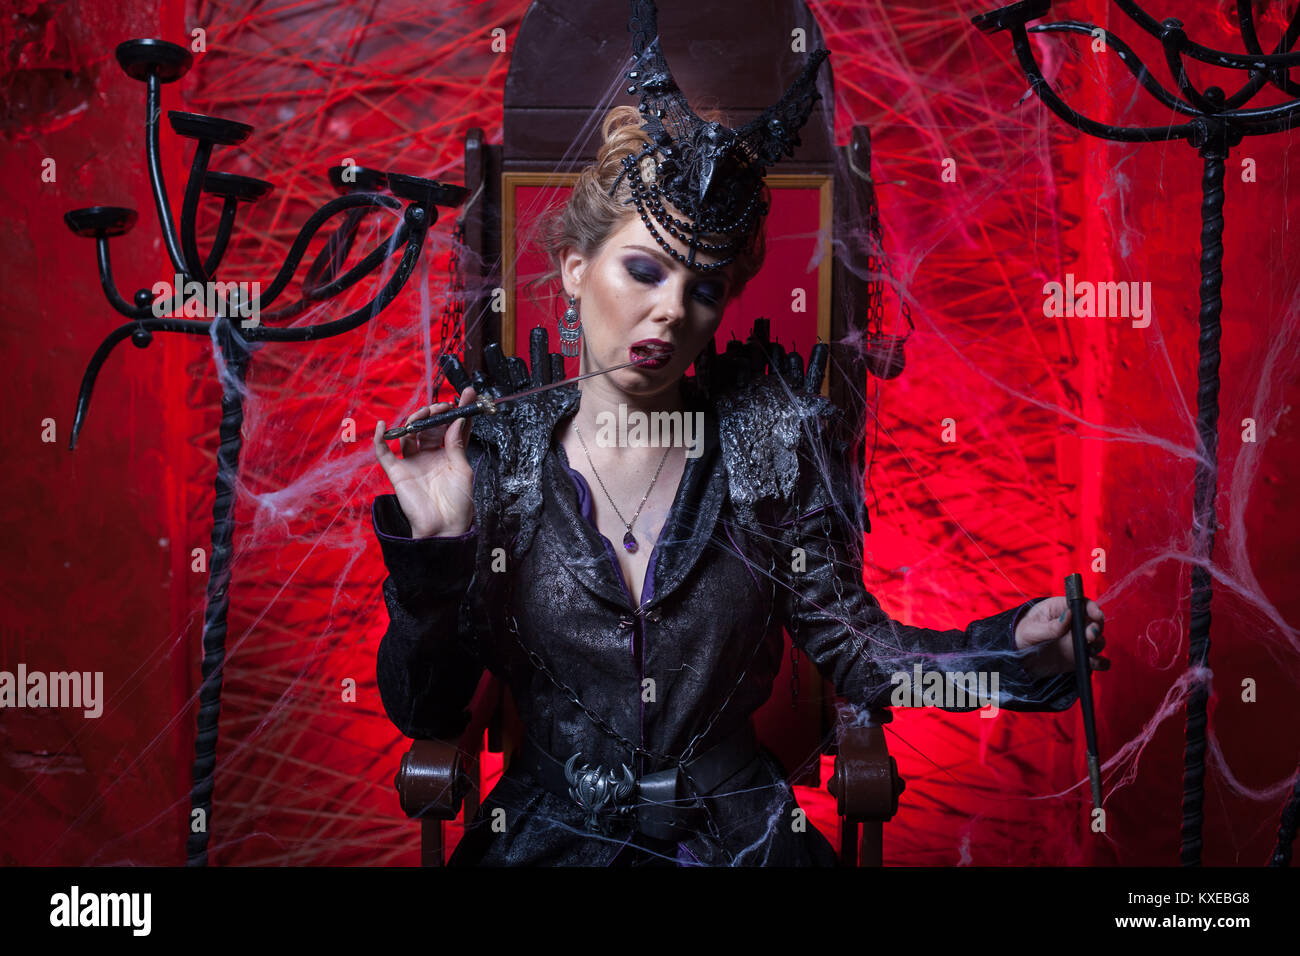 Woman in black sitting in a dark red room. She licks a dagger. - Stock Image